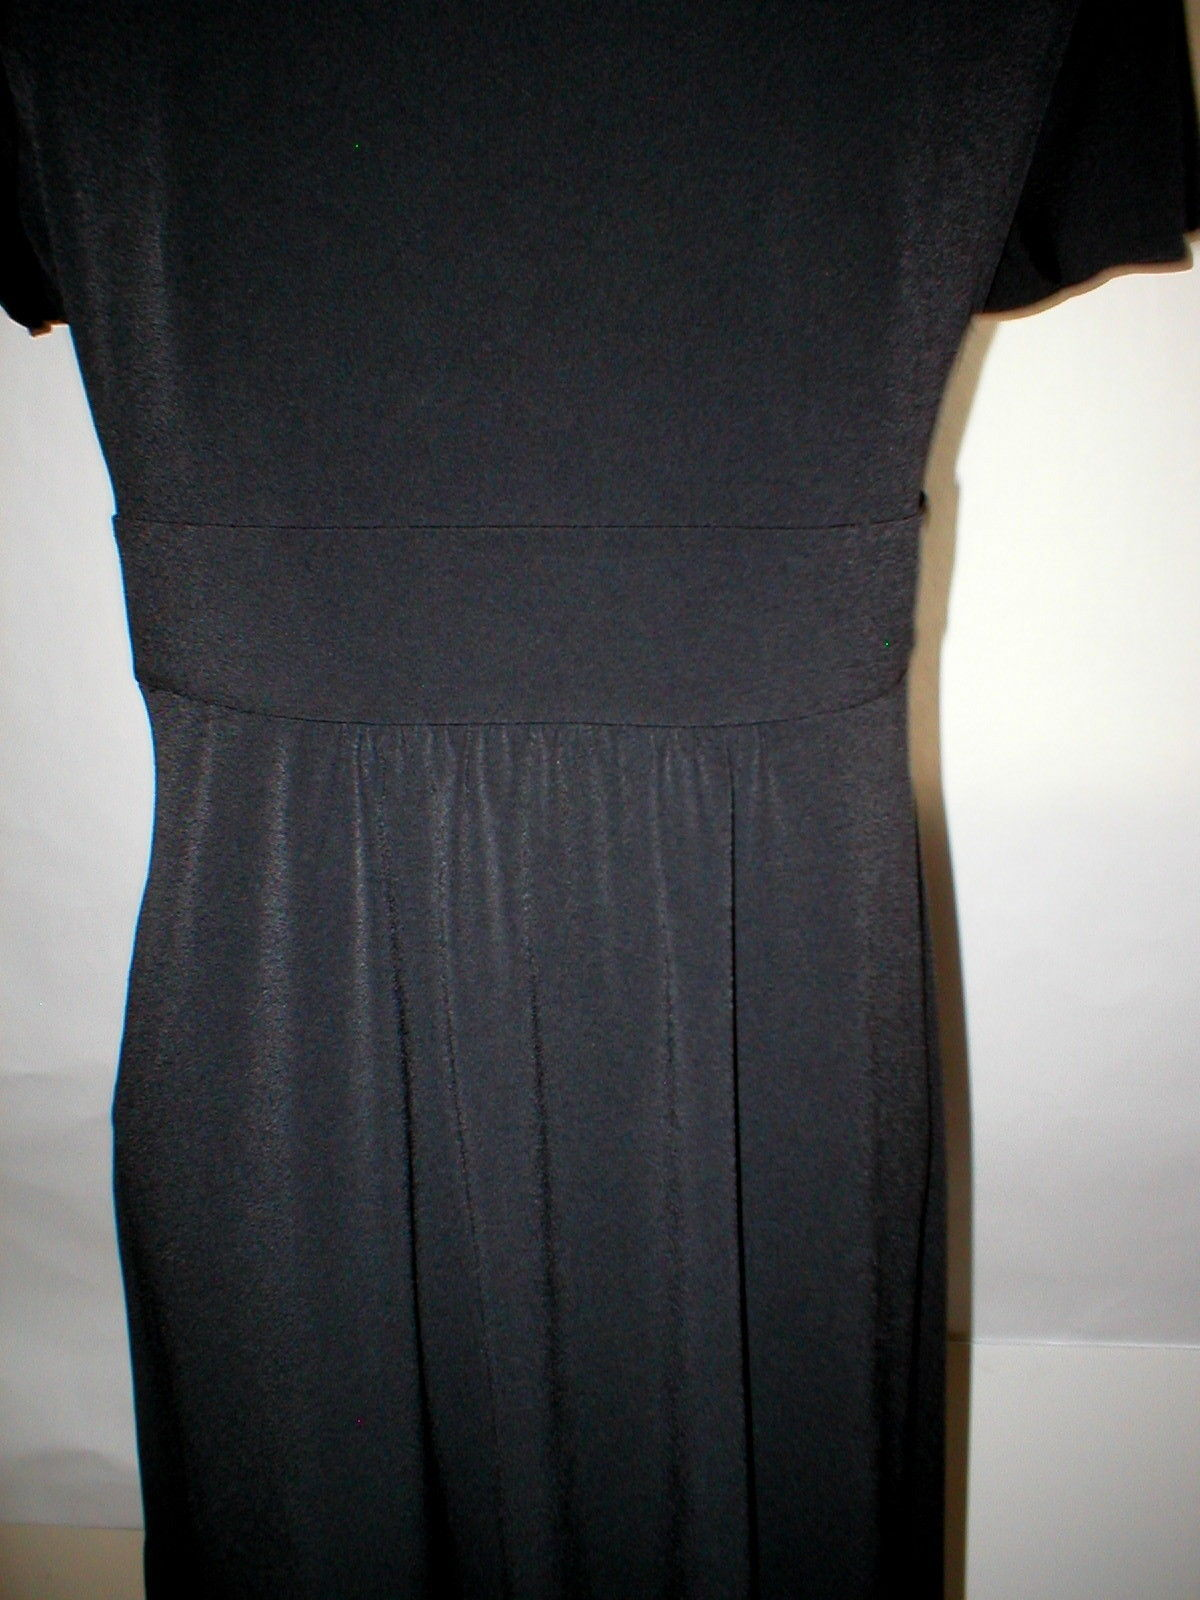 New NWT Womens MP P M Petite Calvin Klein Dress Black Studs Party Date Work  SS